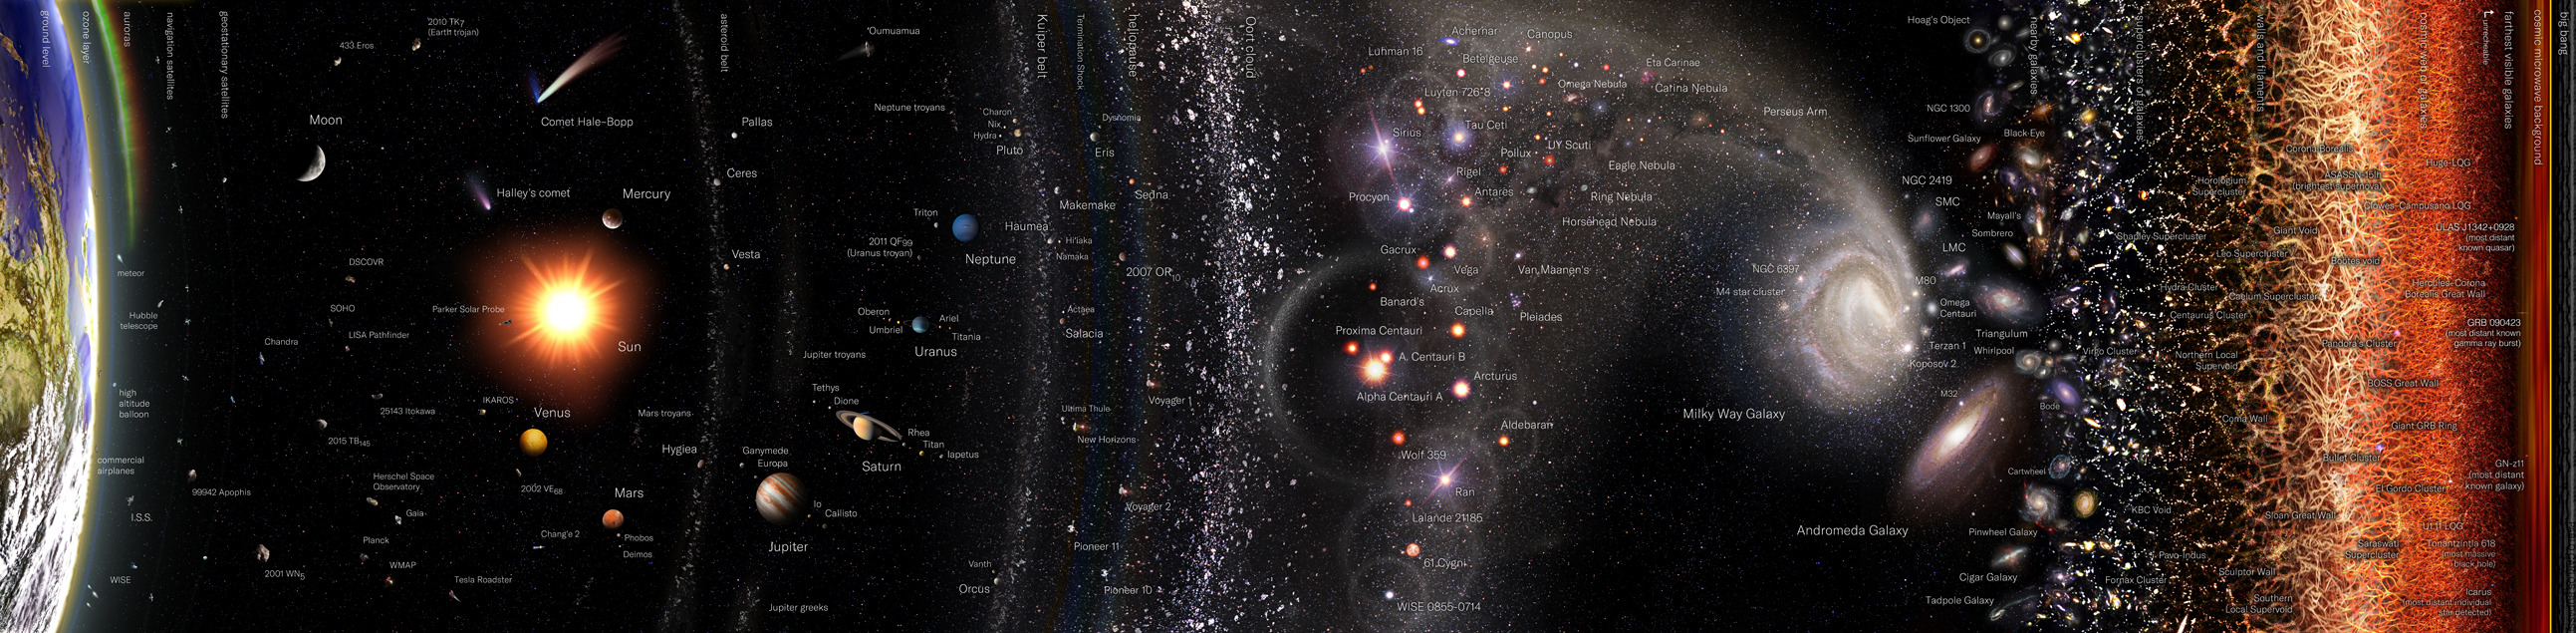 Observable Universe. Image by Pablo Carlos Budassi